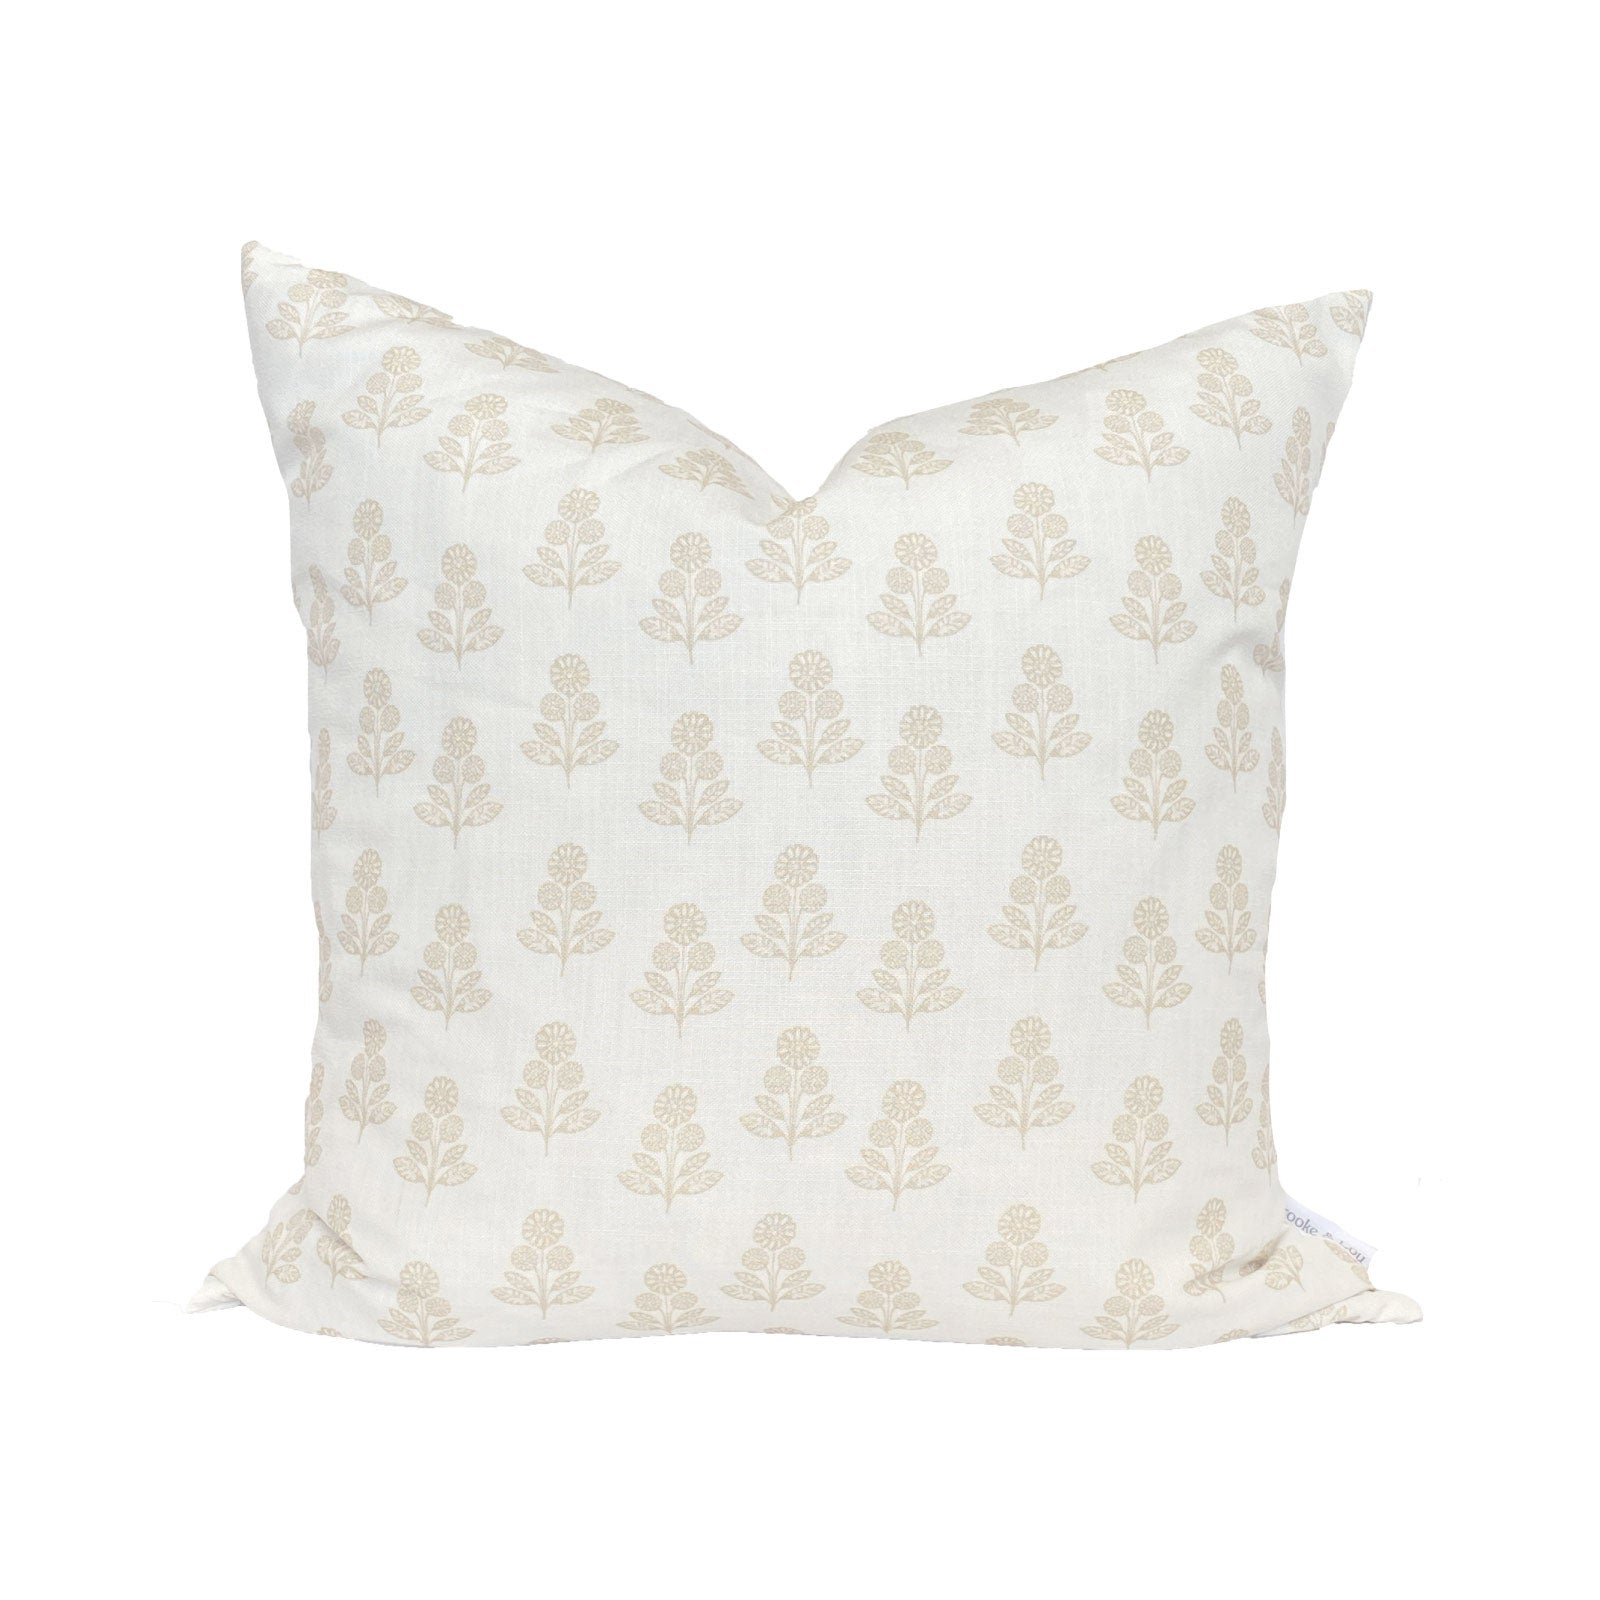 Stella Floral Pillow in Natural